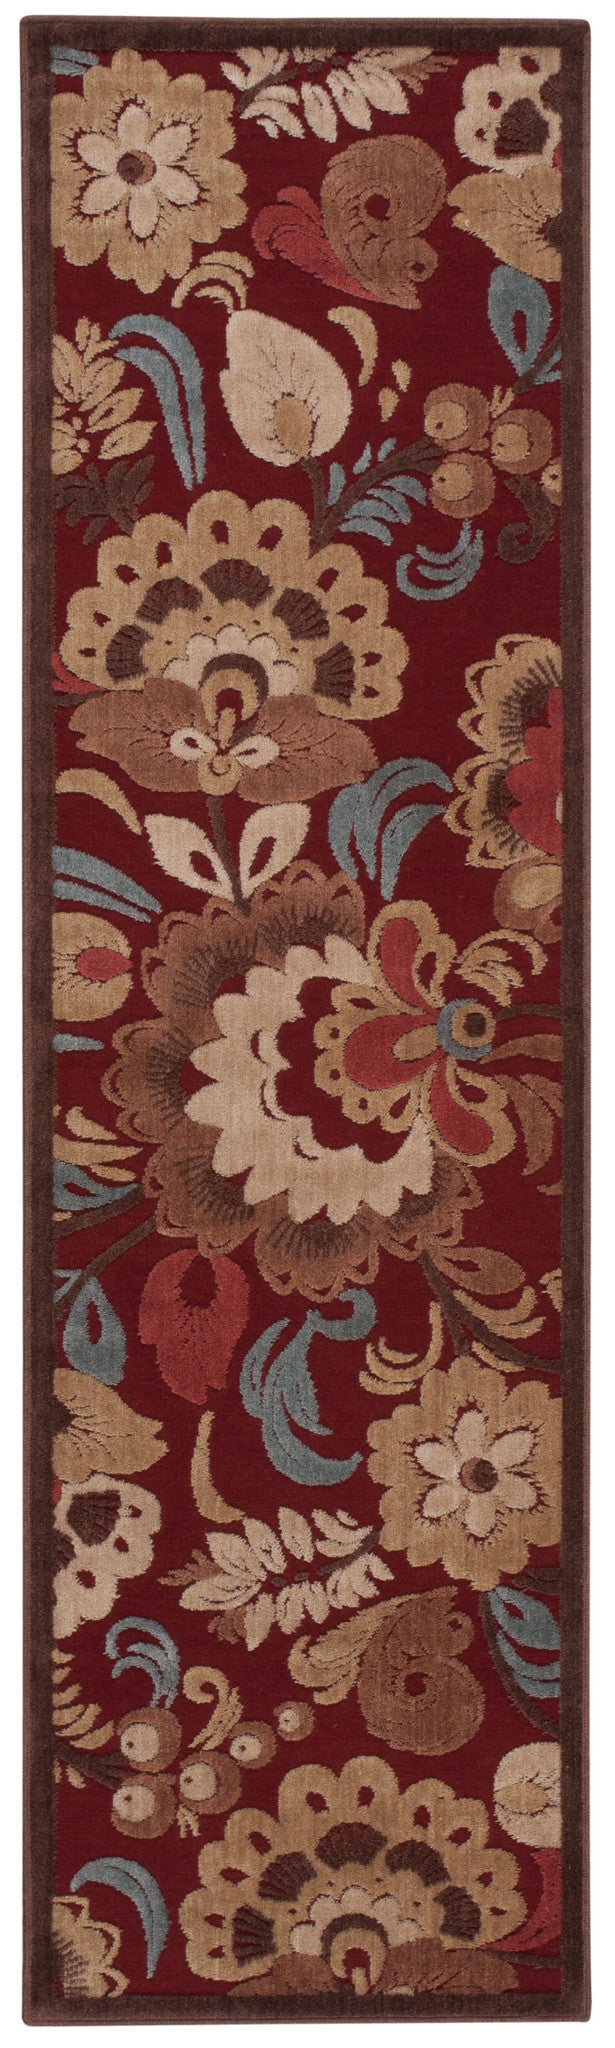 Nourison Graphic Illusions Red Area Rug GIL23 RED